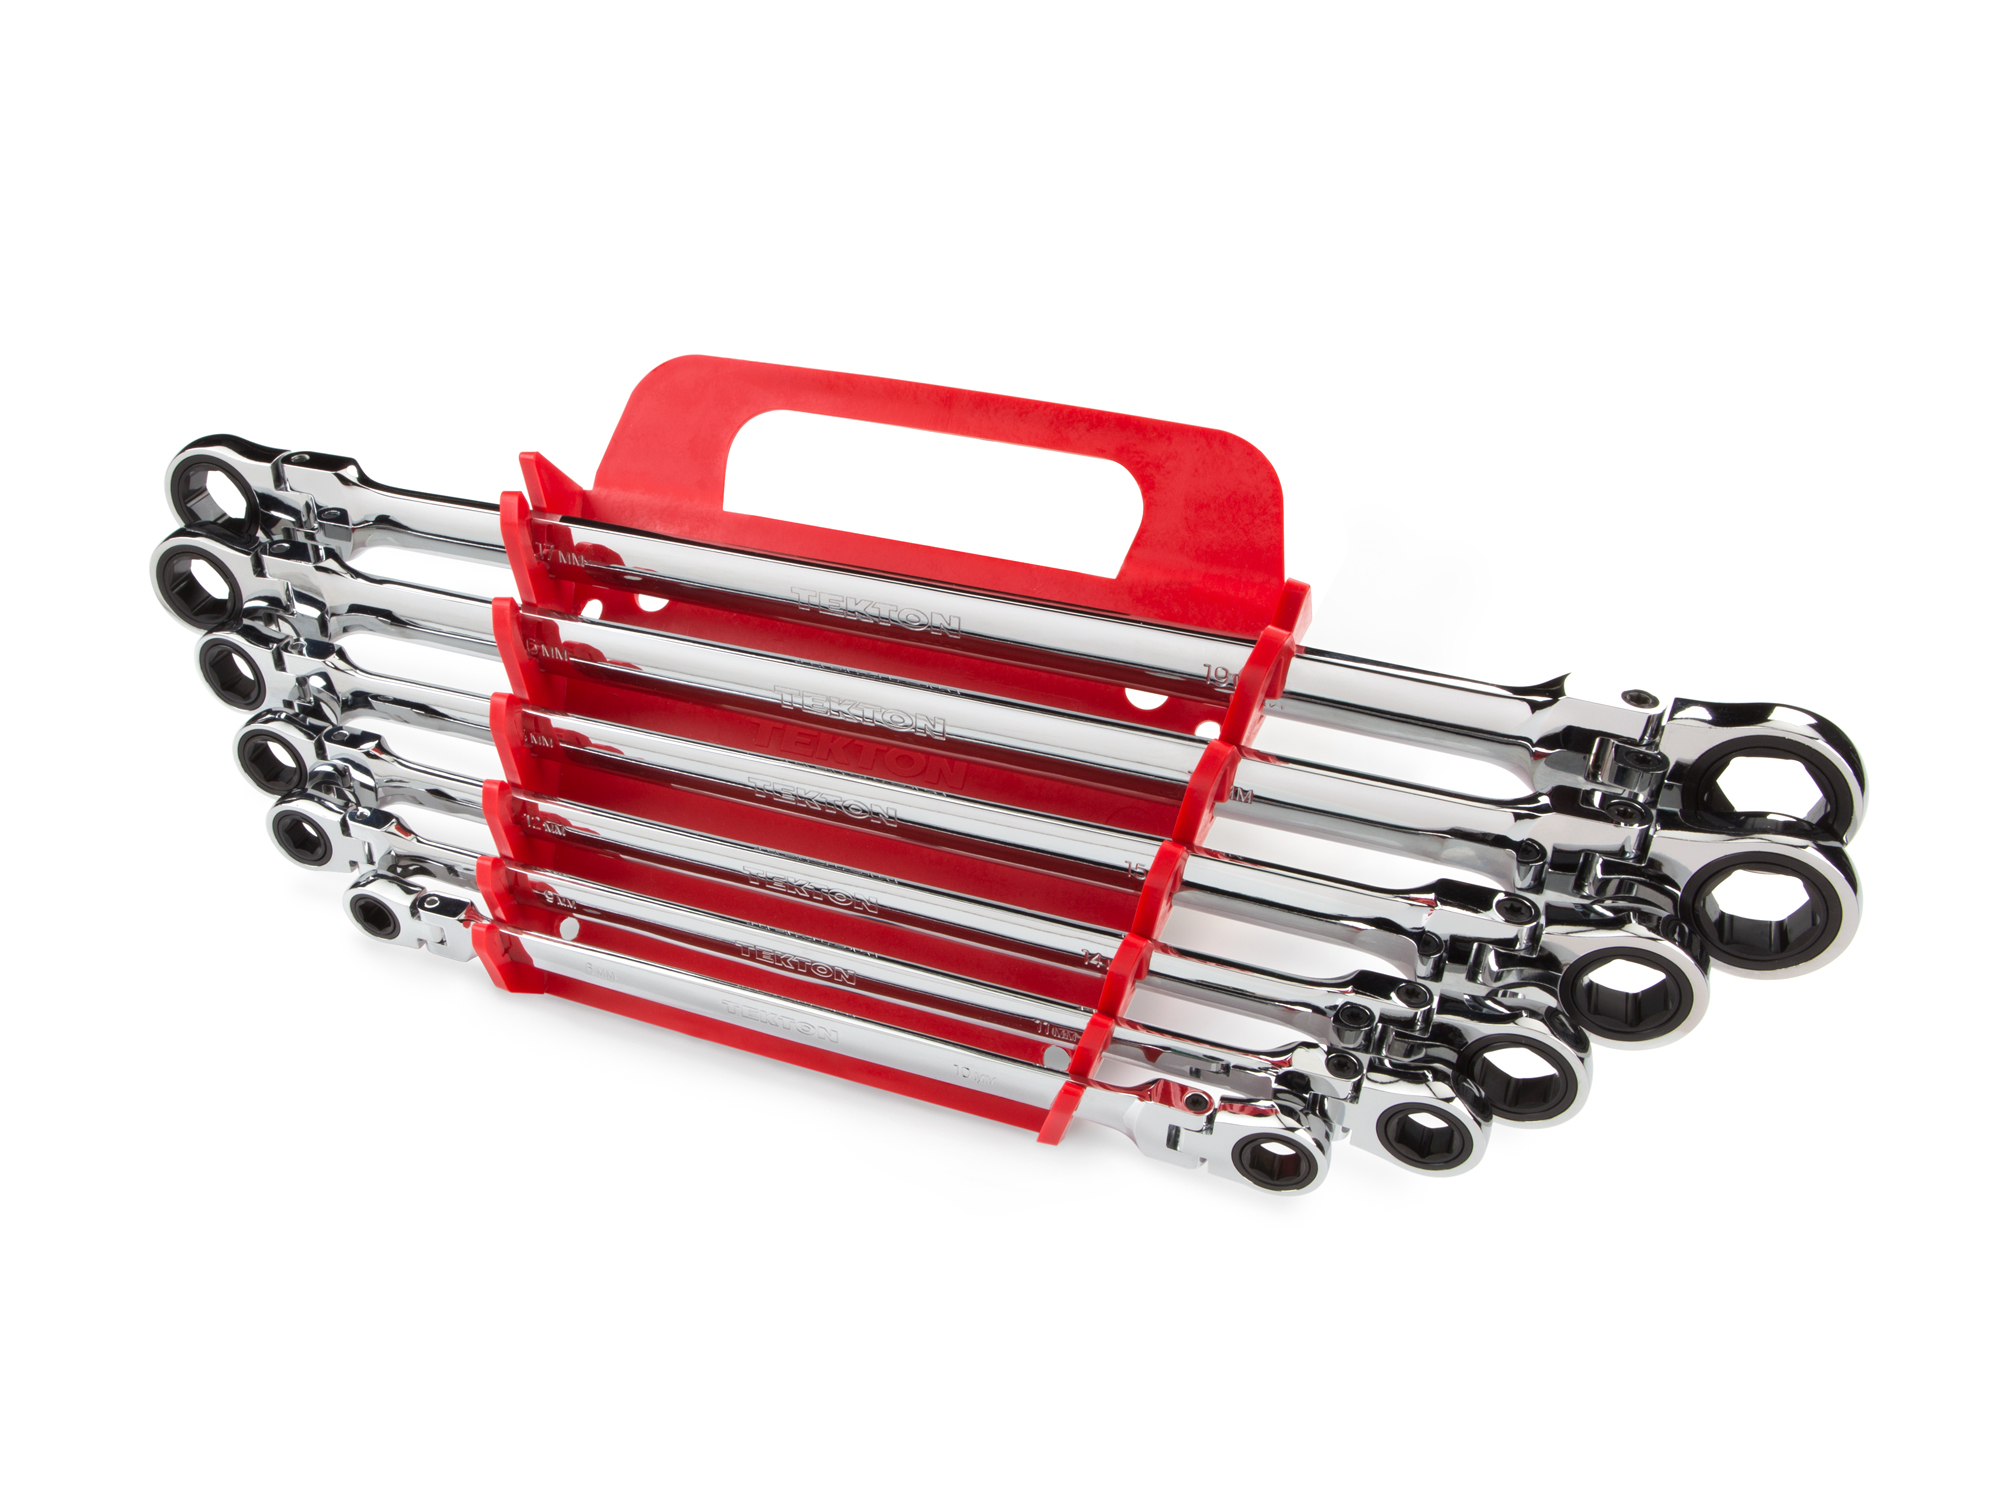 TEKTON Long Flex Ratcheting Box End Wrench Set, 6-Piece (8-19 mm) Keeper | WRN77164 by TEKTON